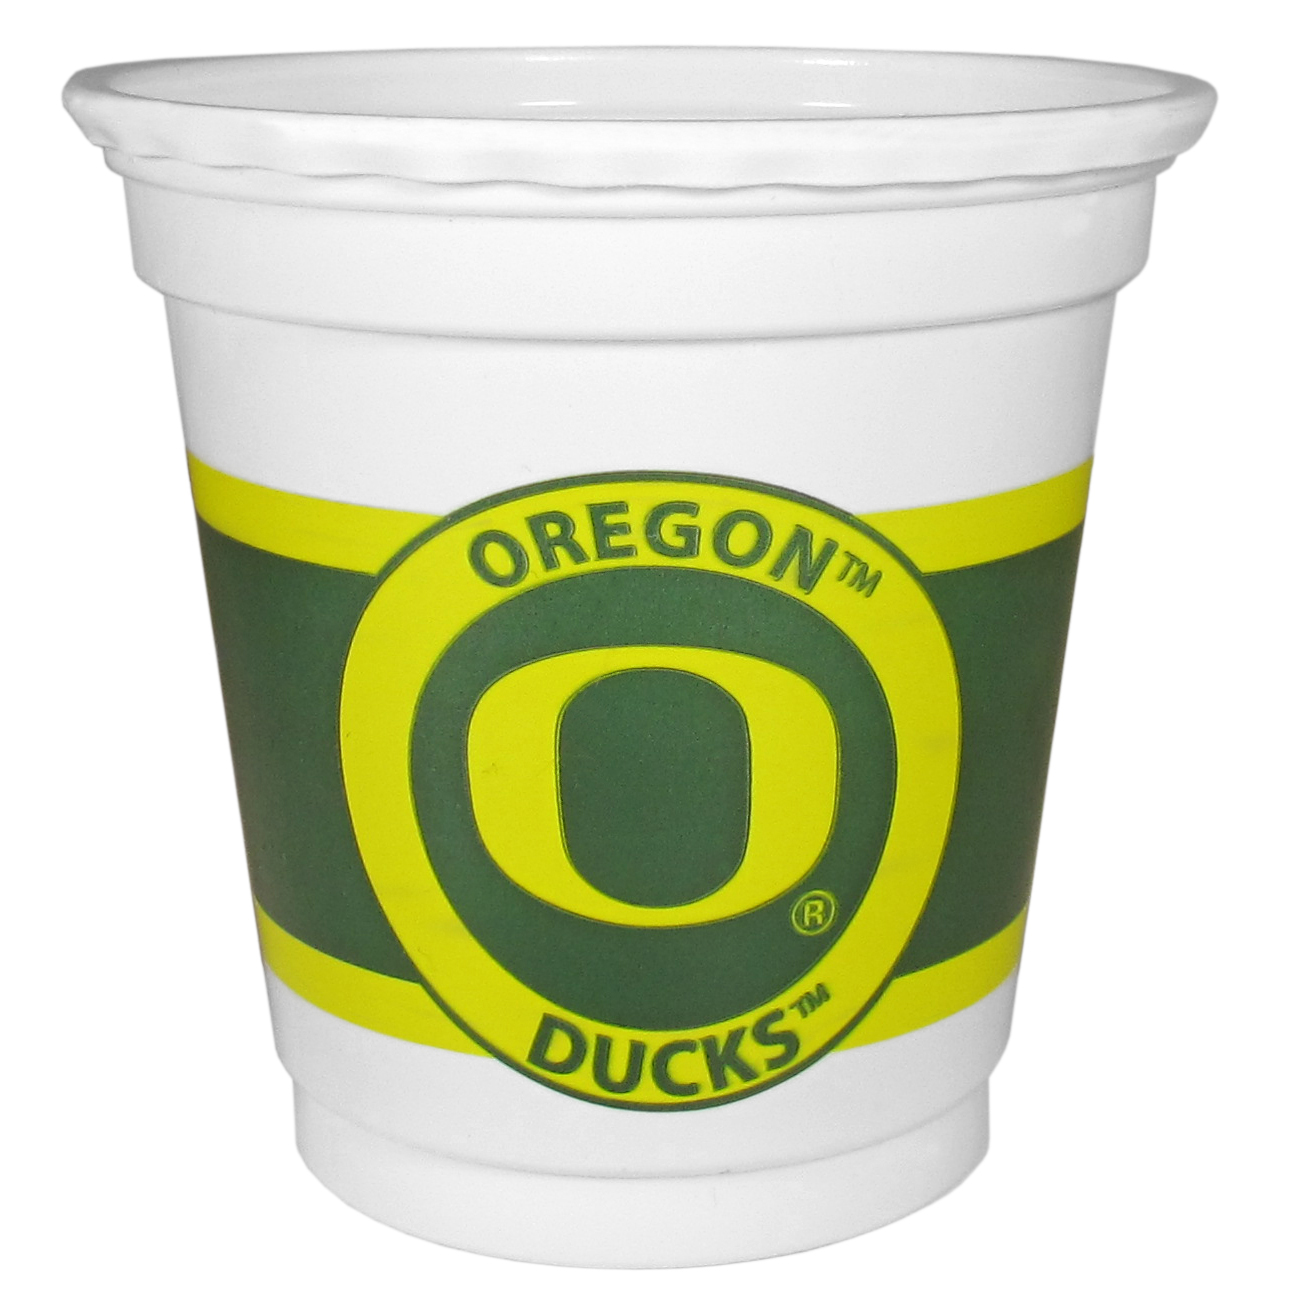 Oregon Ducks 18 Game Day Mini Cups - No better way to show your off your team pride on game day than these Oregon Ducks game day mini cups. The 3 ounce disposable glasses are the perfect addition to your game day party or tailgating BBQ. The cups come in a sleeve of 18 to make sure everyone is sporting true team spirit!